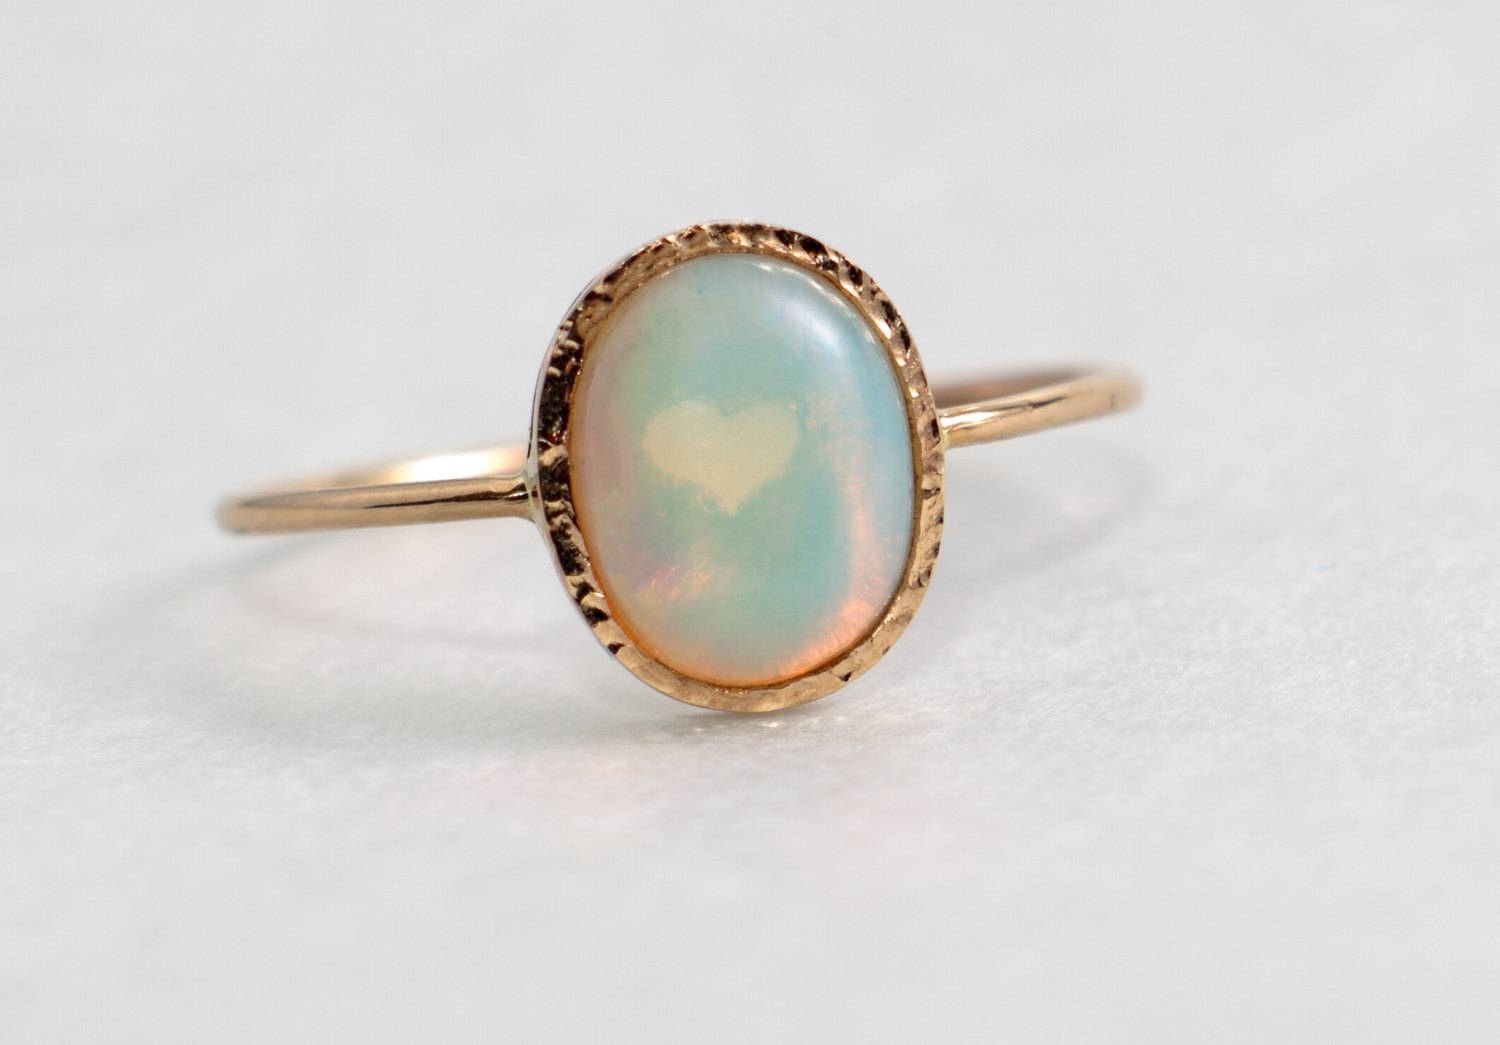 Fire Opal Engagement Ring, Solid 14K Gold, Opal Jewelry Within Opal Wedding Rings (View 9 of 15)